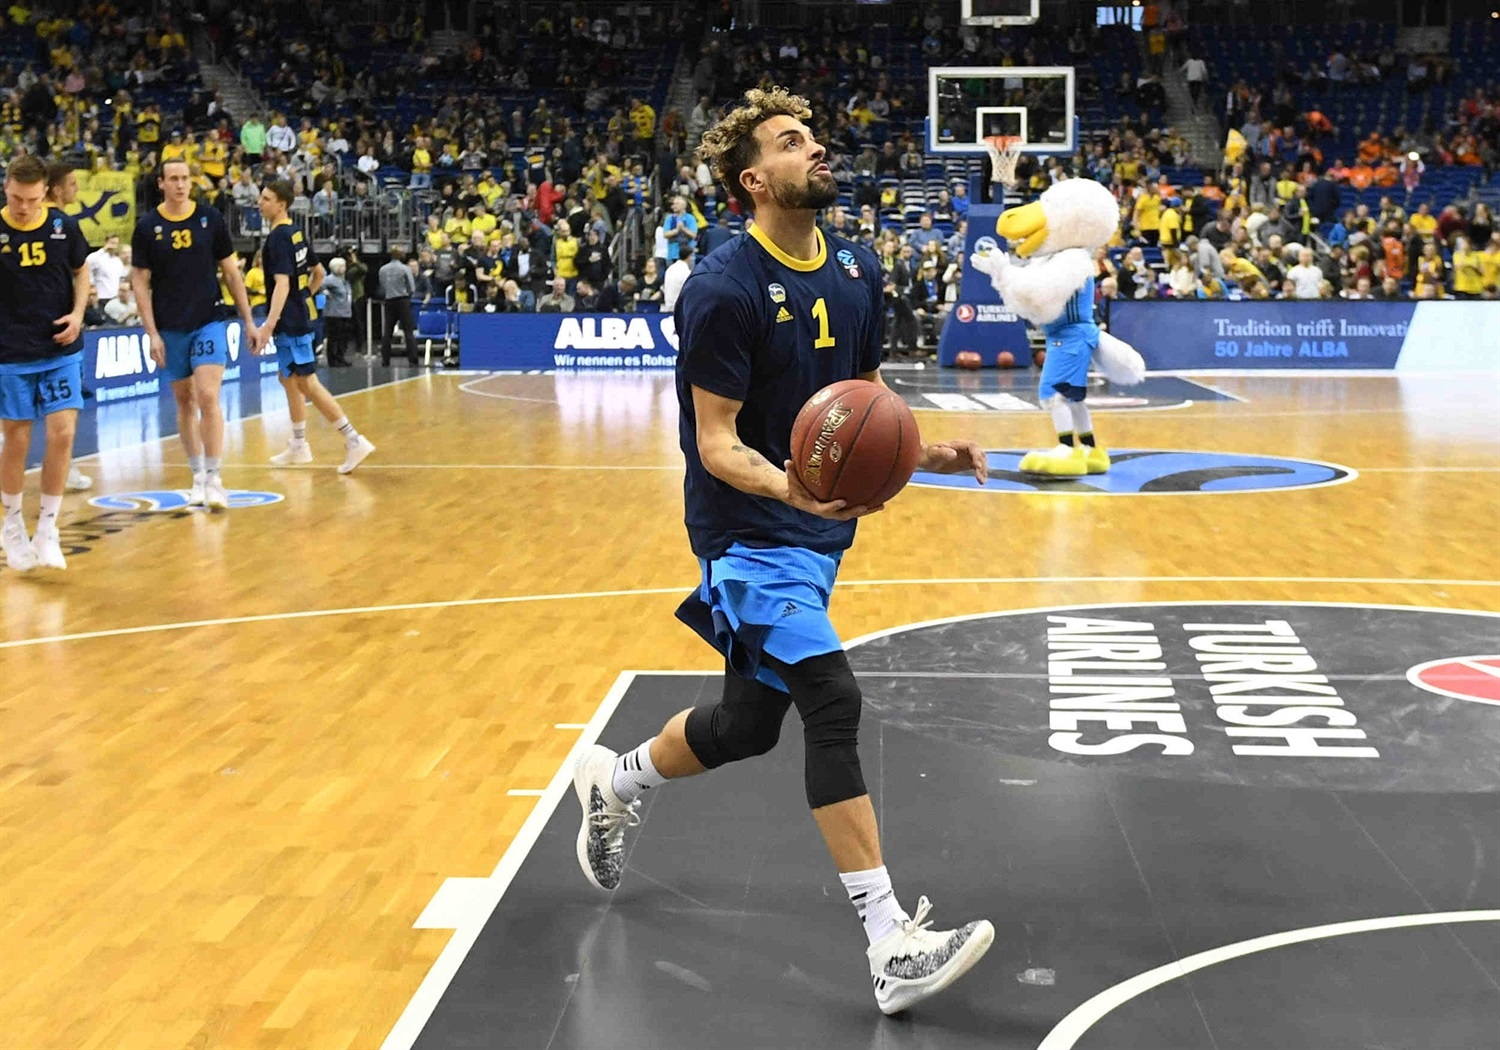 Joshiko Saibou - ALBA Berlin in pregame - Finals Game 2 - EC18